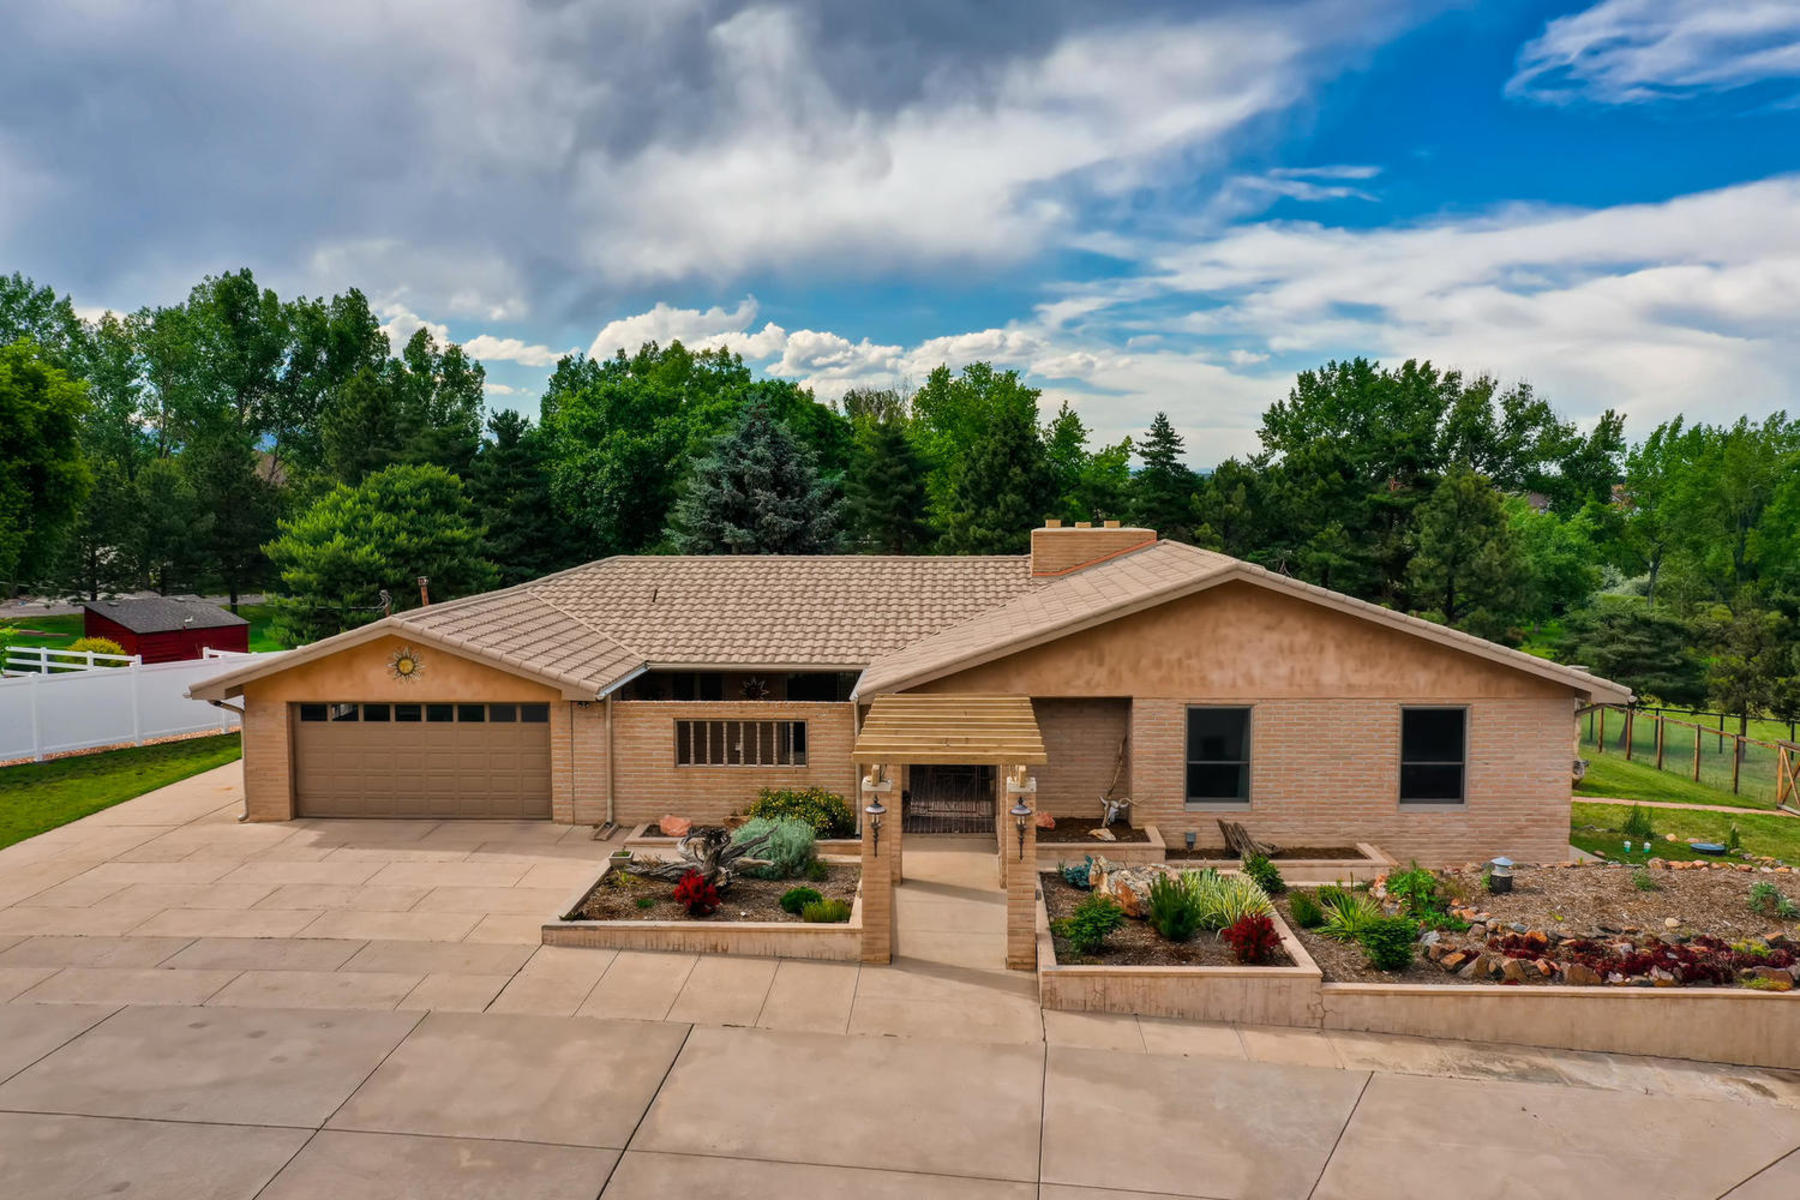 Single Family Homes for Active at 10455 W 81st Avenue Arvada, Colorado 80005 United States